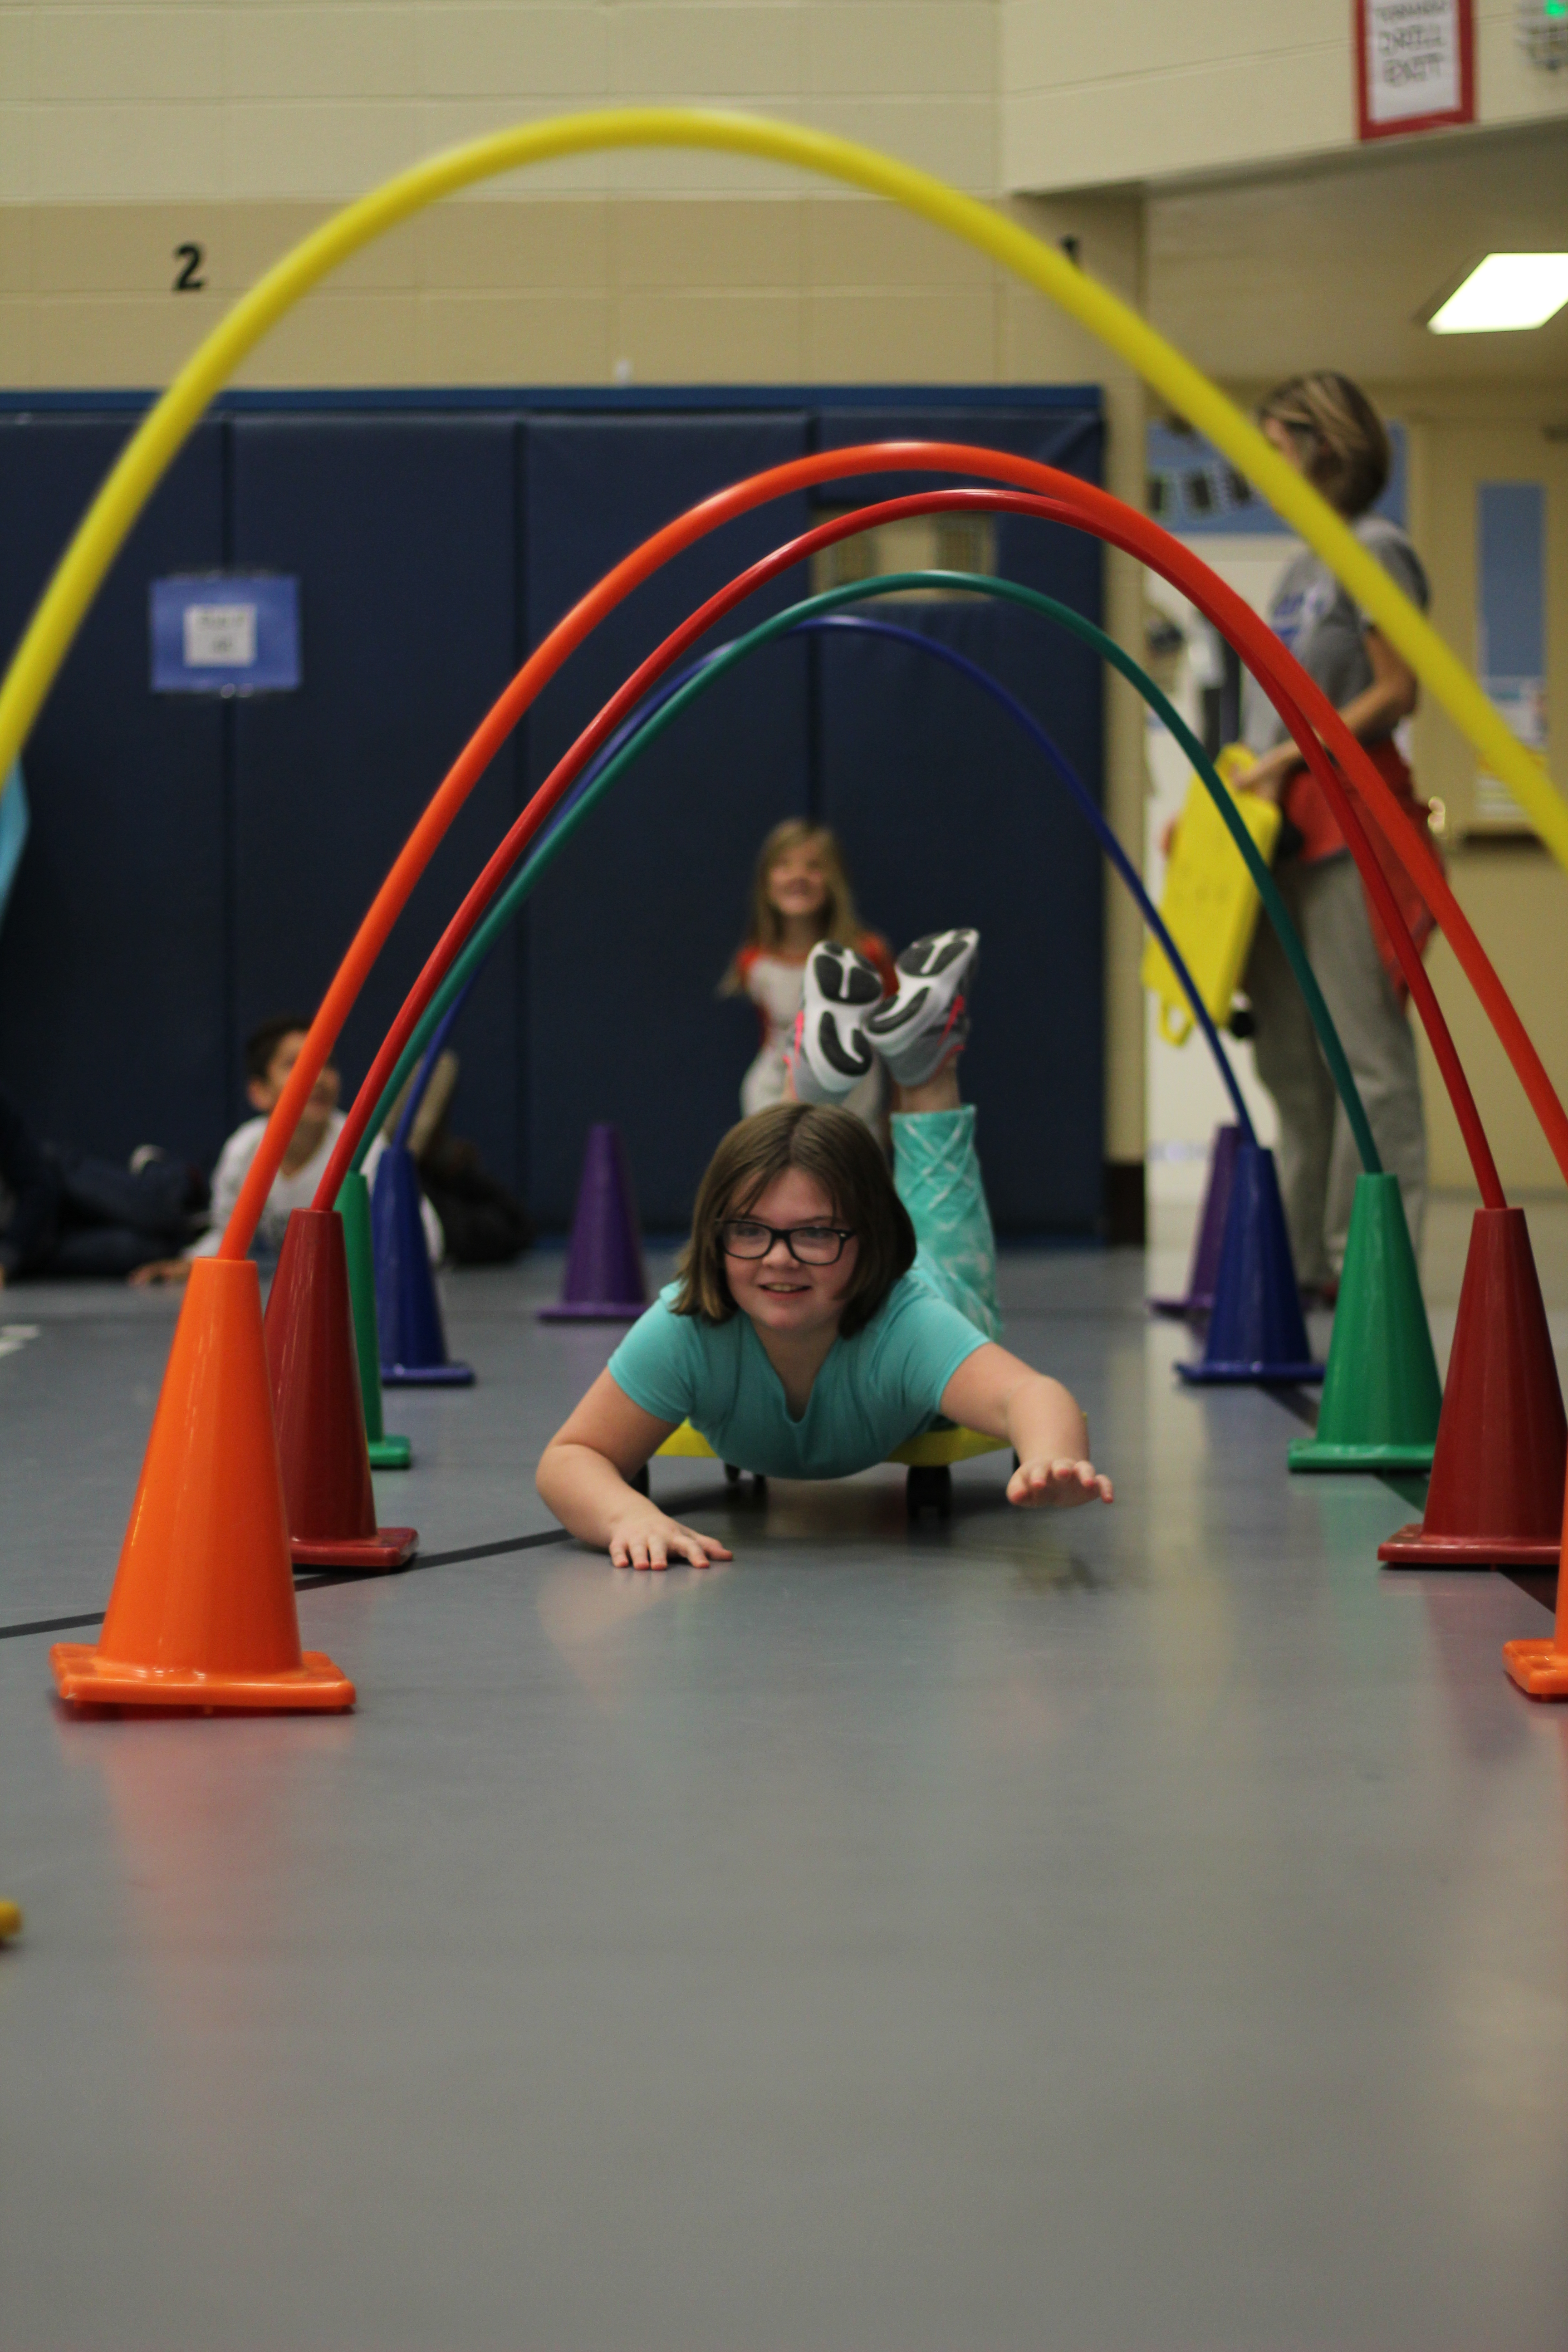 A student rolls through the obstacle course